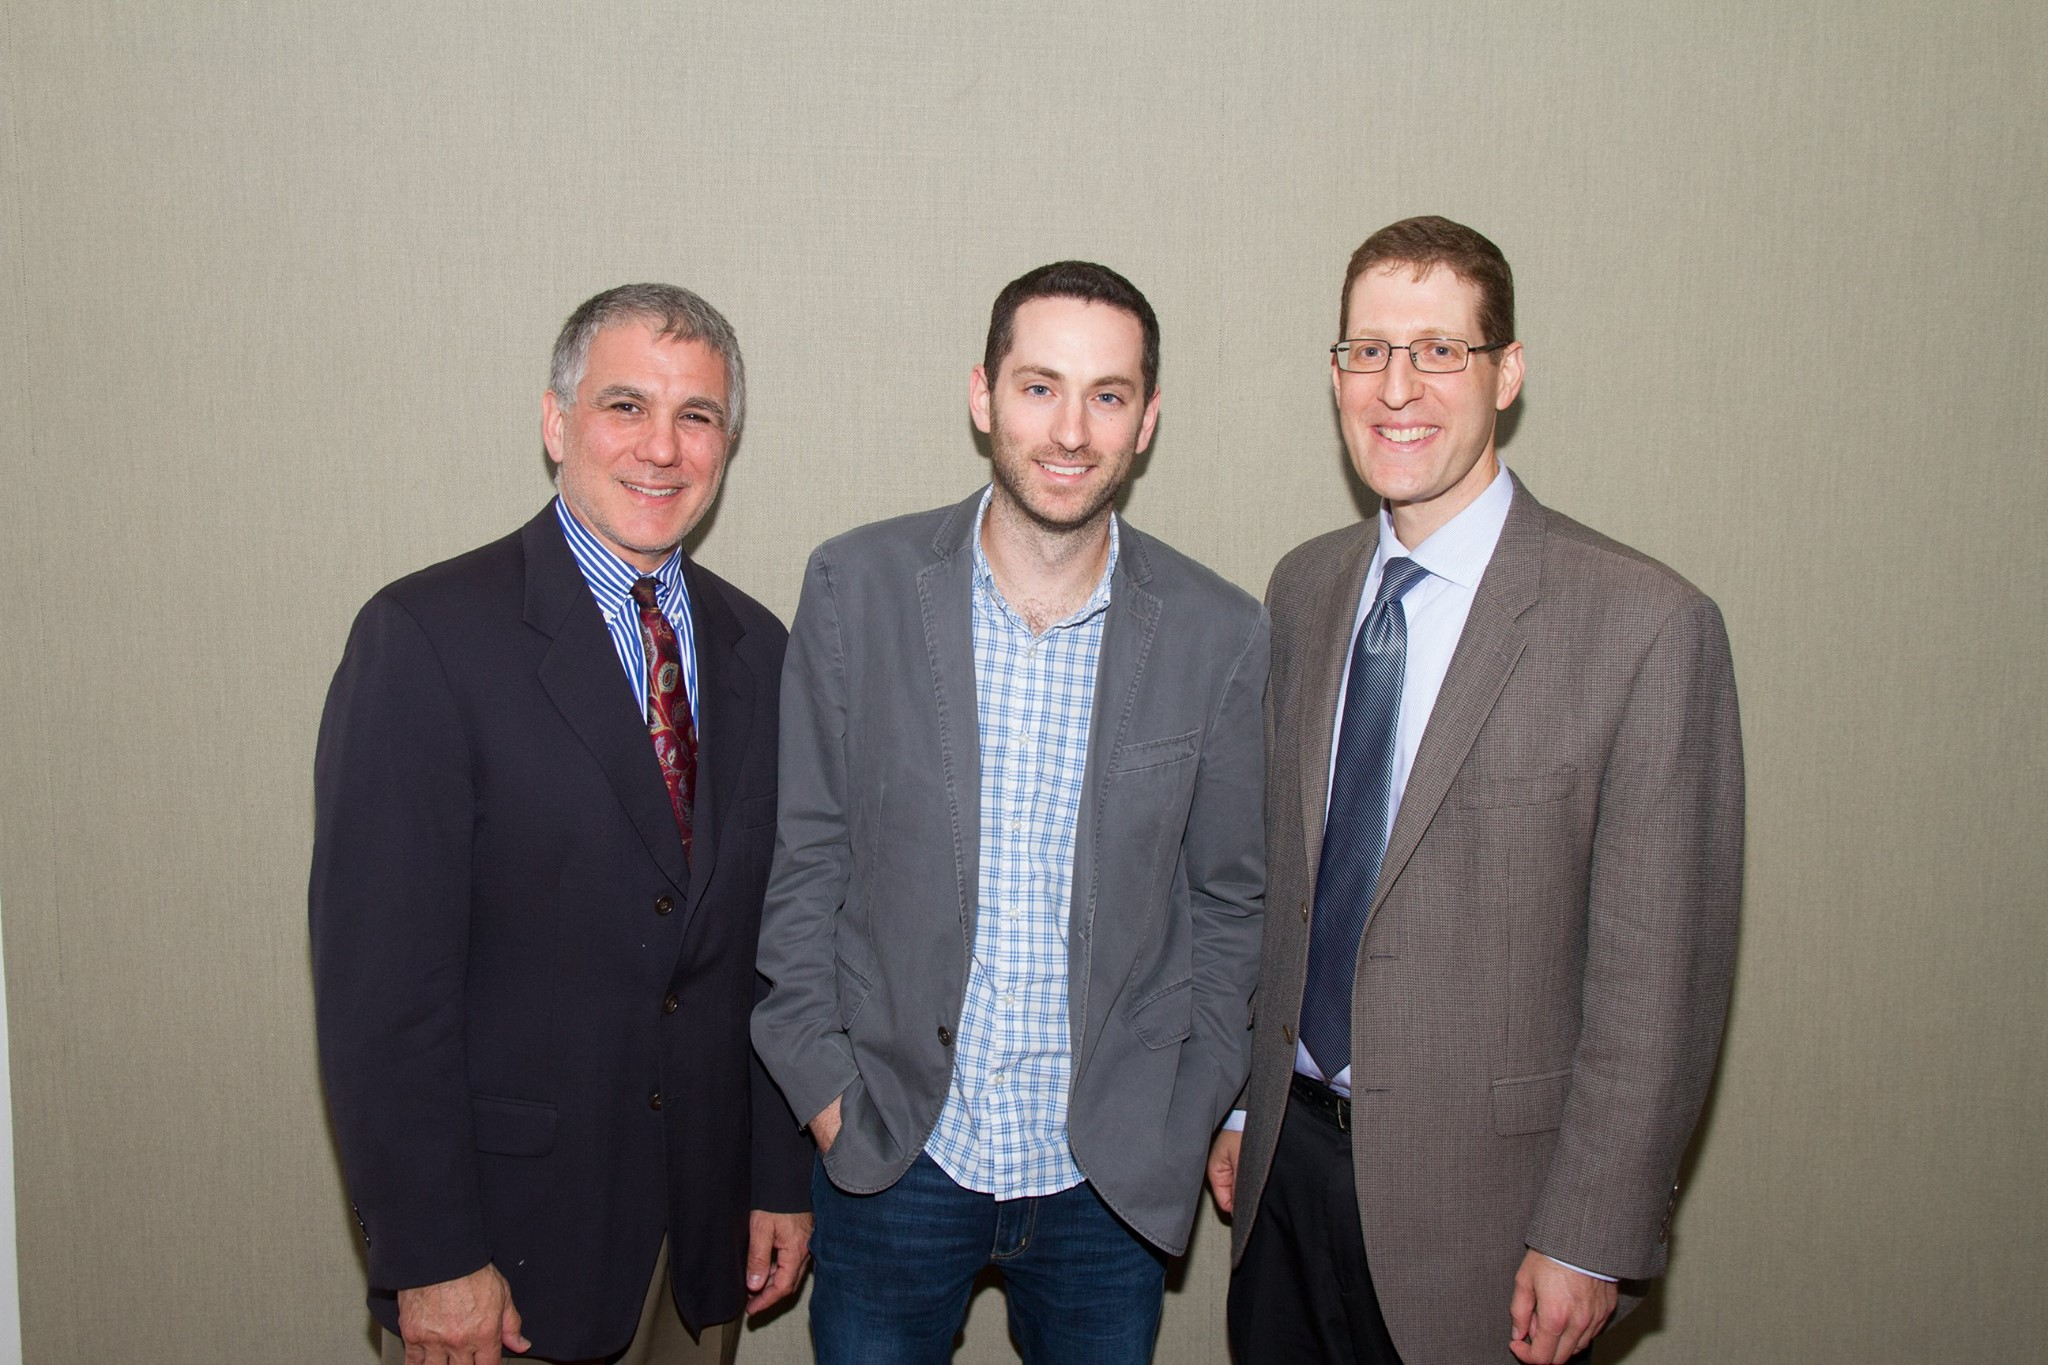 Center Director, Professor Jeffrey Shoulson, Professor Josh Lambert, and Professor Avinoam Patt of the University of Hartford